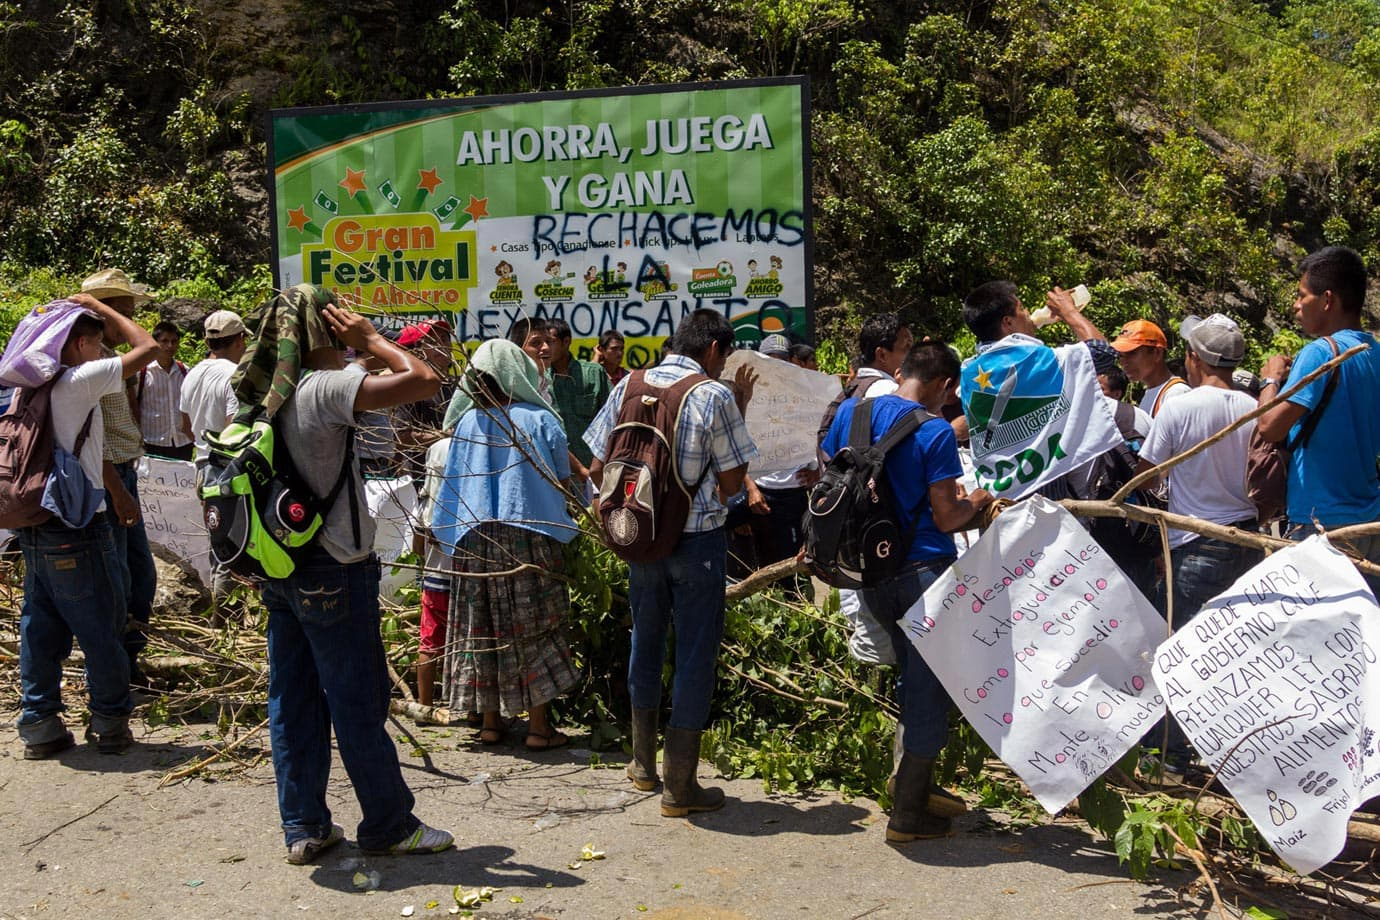 Protests over the price of maize seeds were going on throughout Guatemala